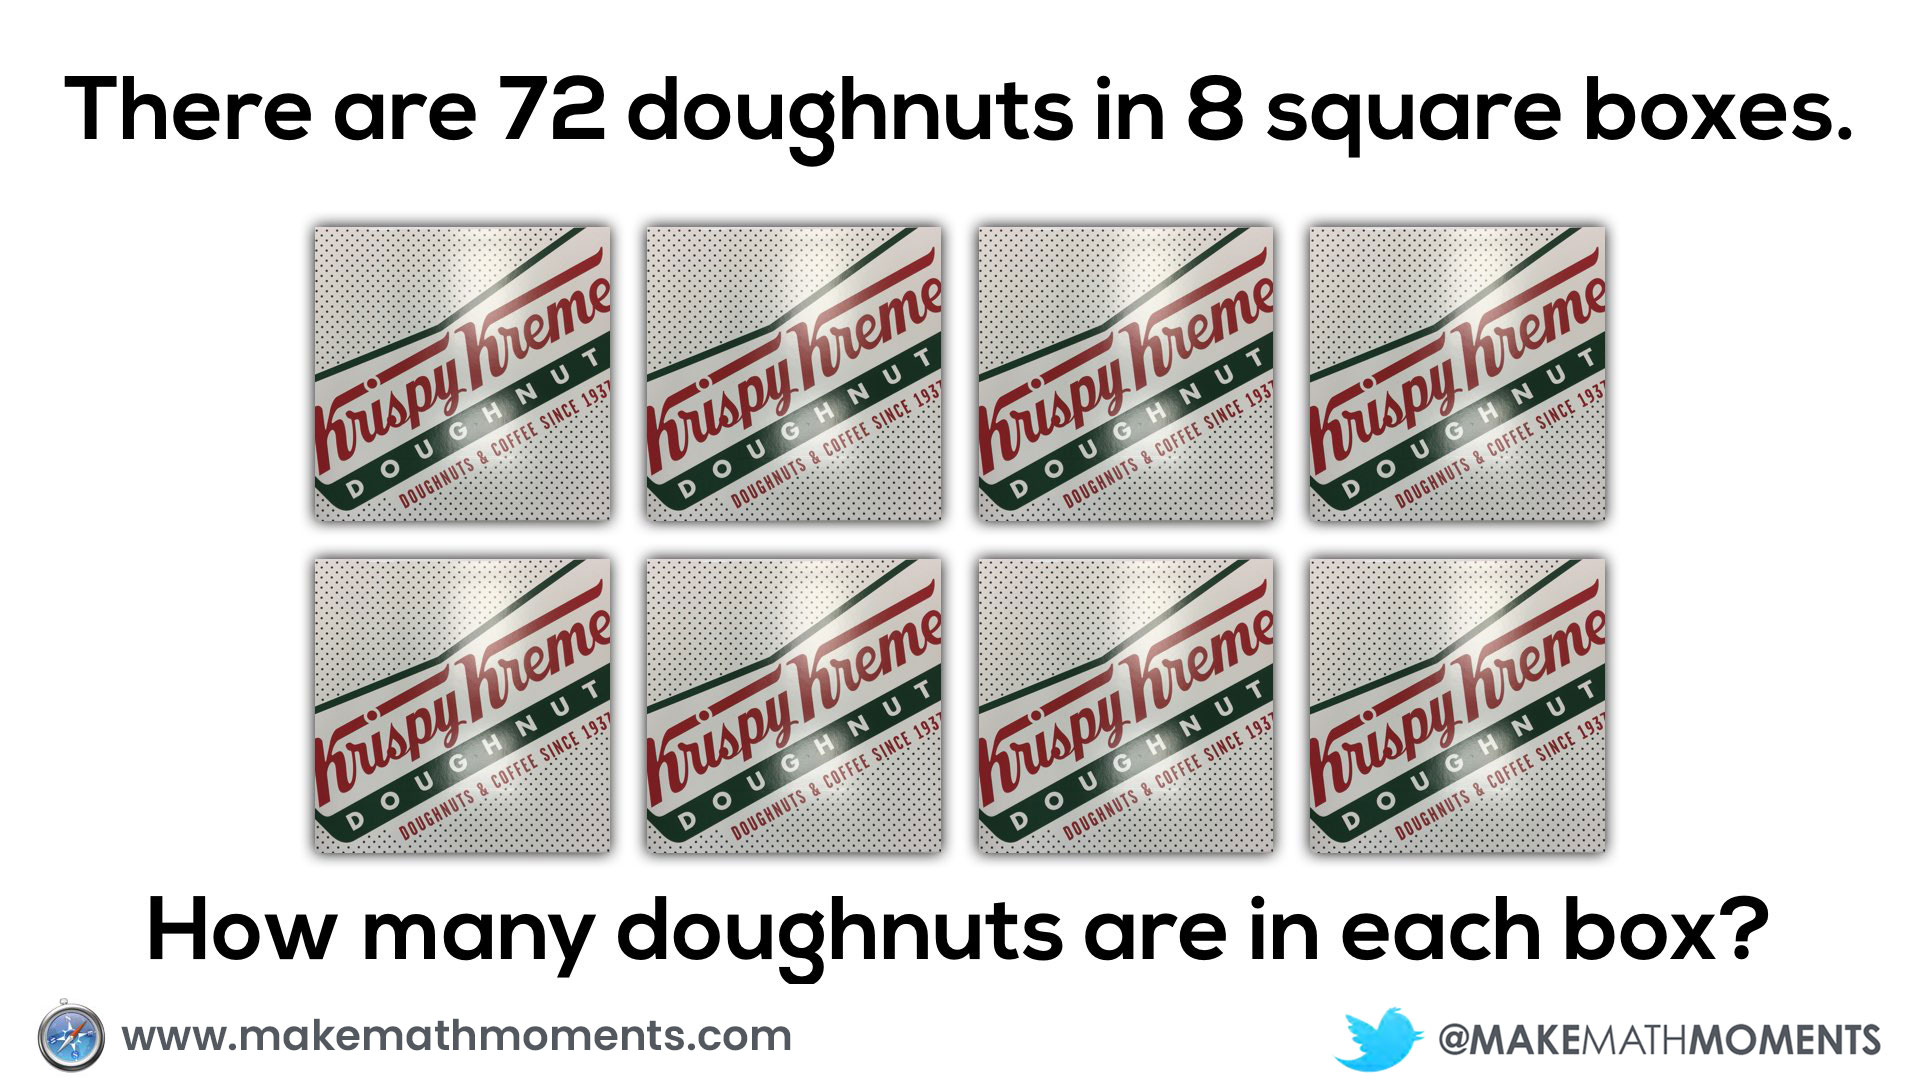 72 doughnuts in 8 square boxes how many are there